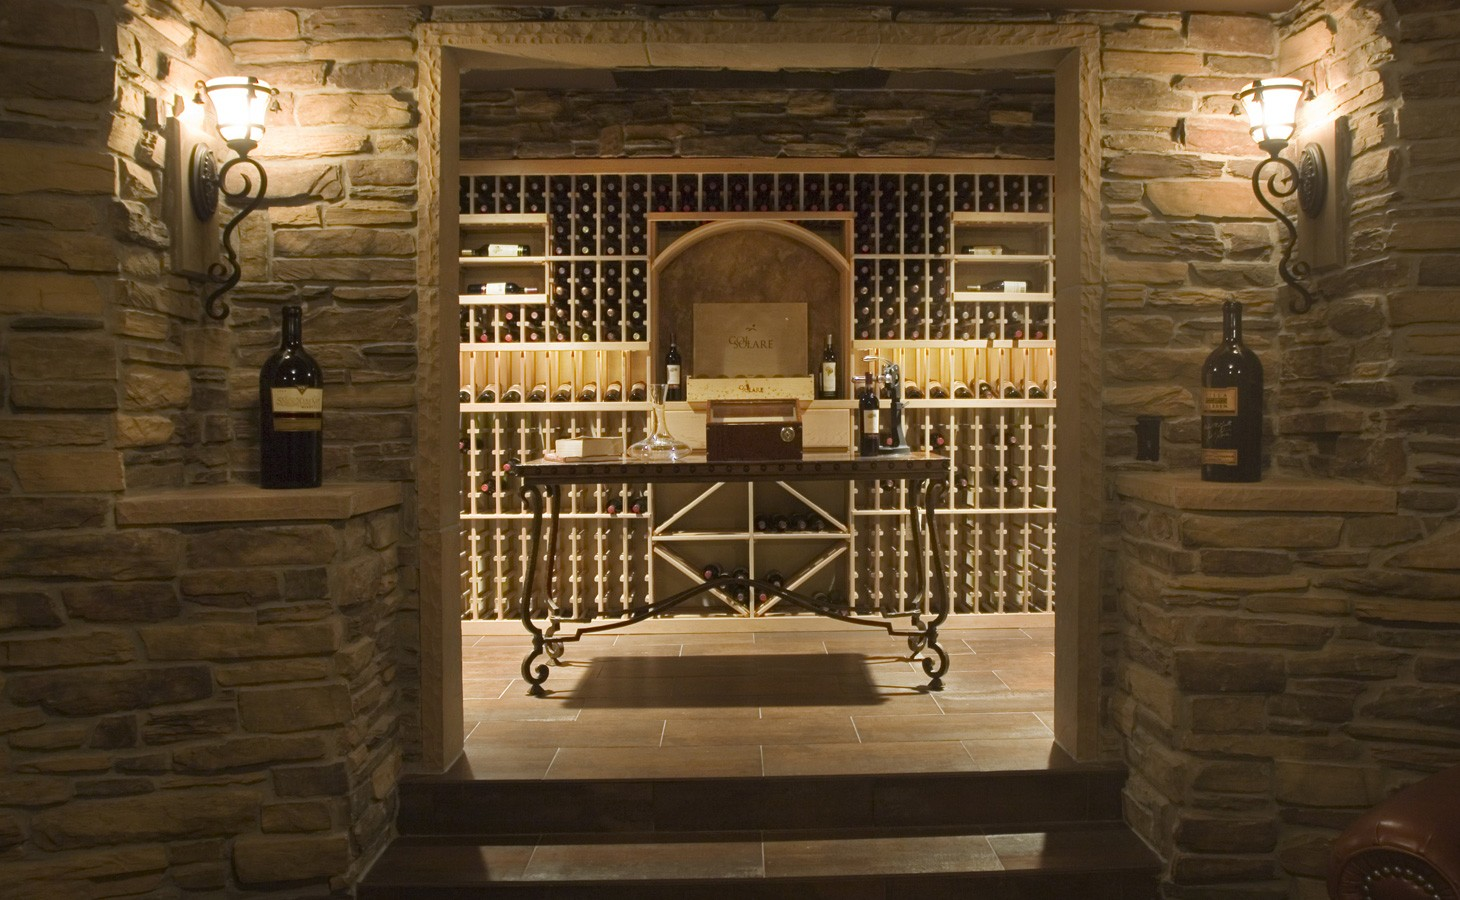 hight resolution of es rustic ledge saratoga int wine cellar 2 sod seattle